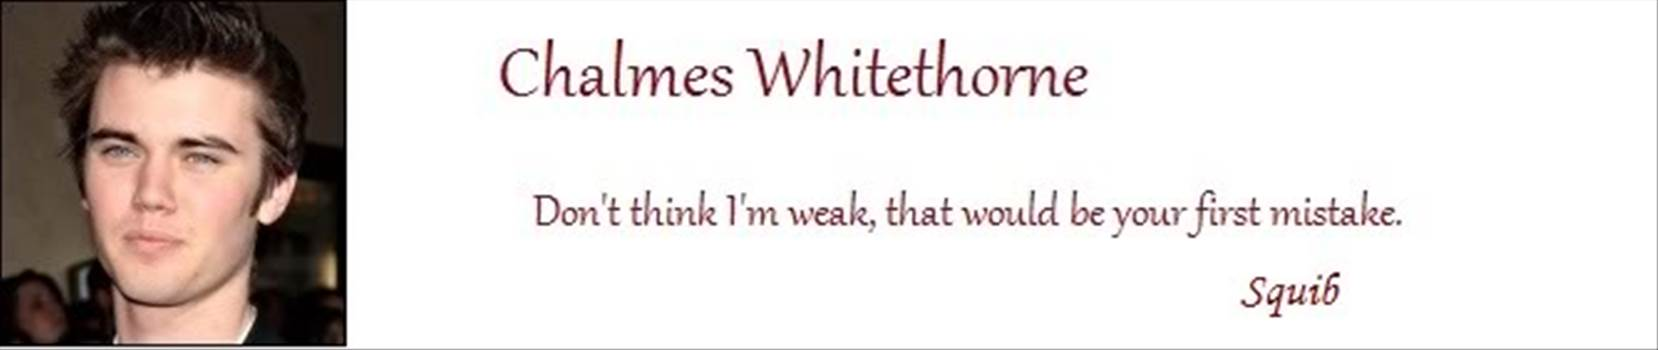 ChalmesWhitethorneSignature.jpg by Charbonne